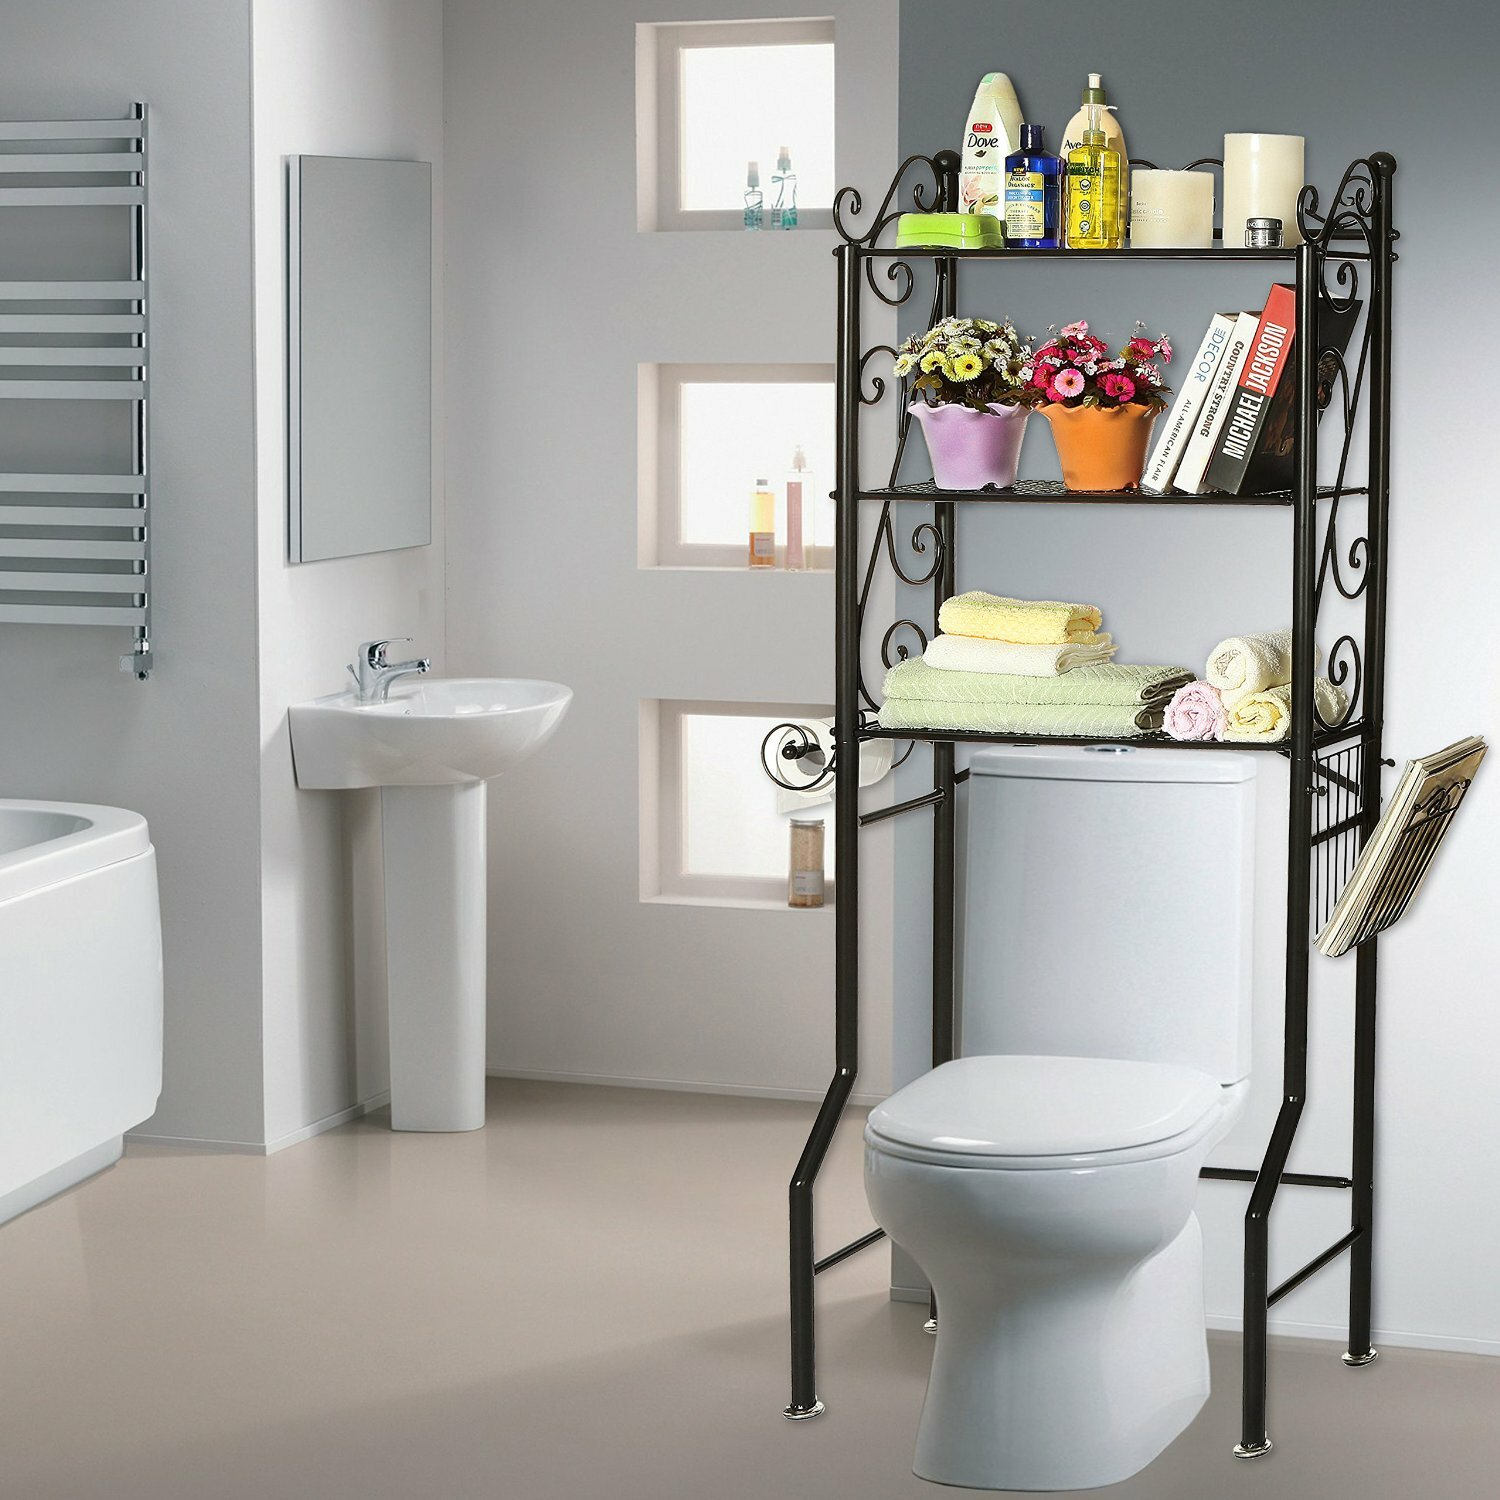 Spacesaver Bathroom | Toilet Etagere | Bathroom Shelves Above Toilet